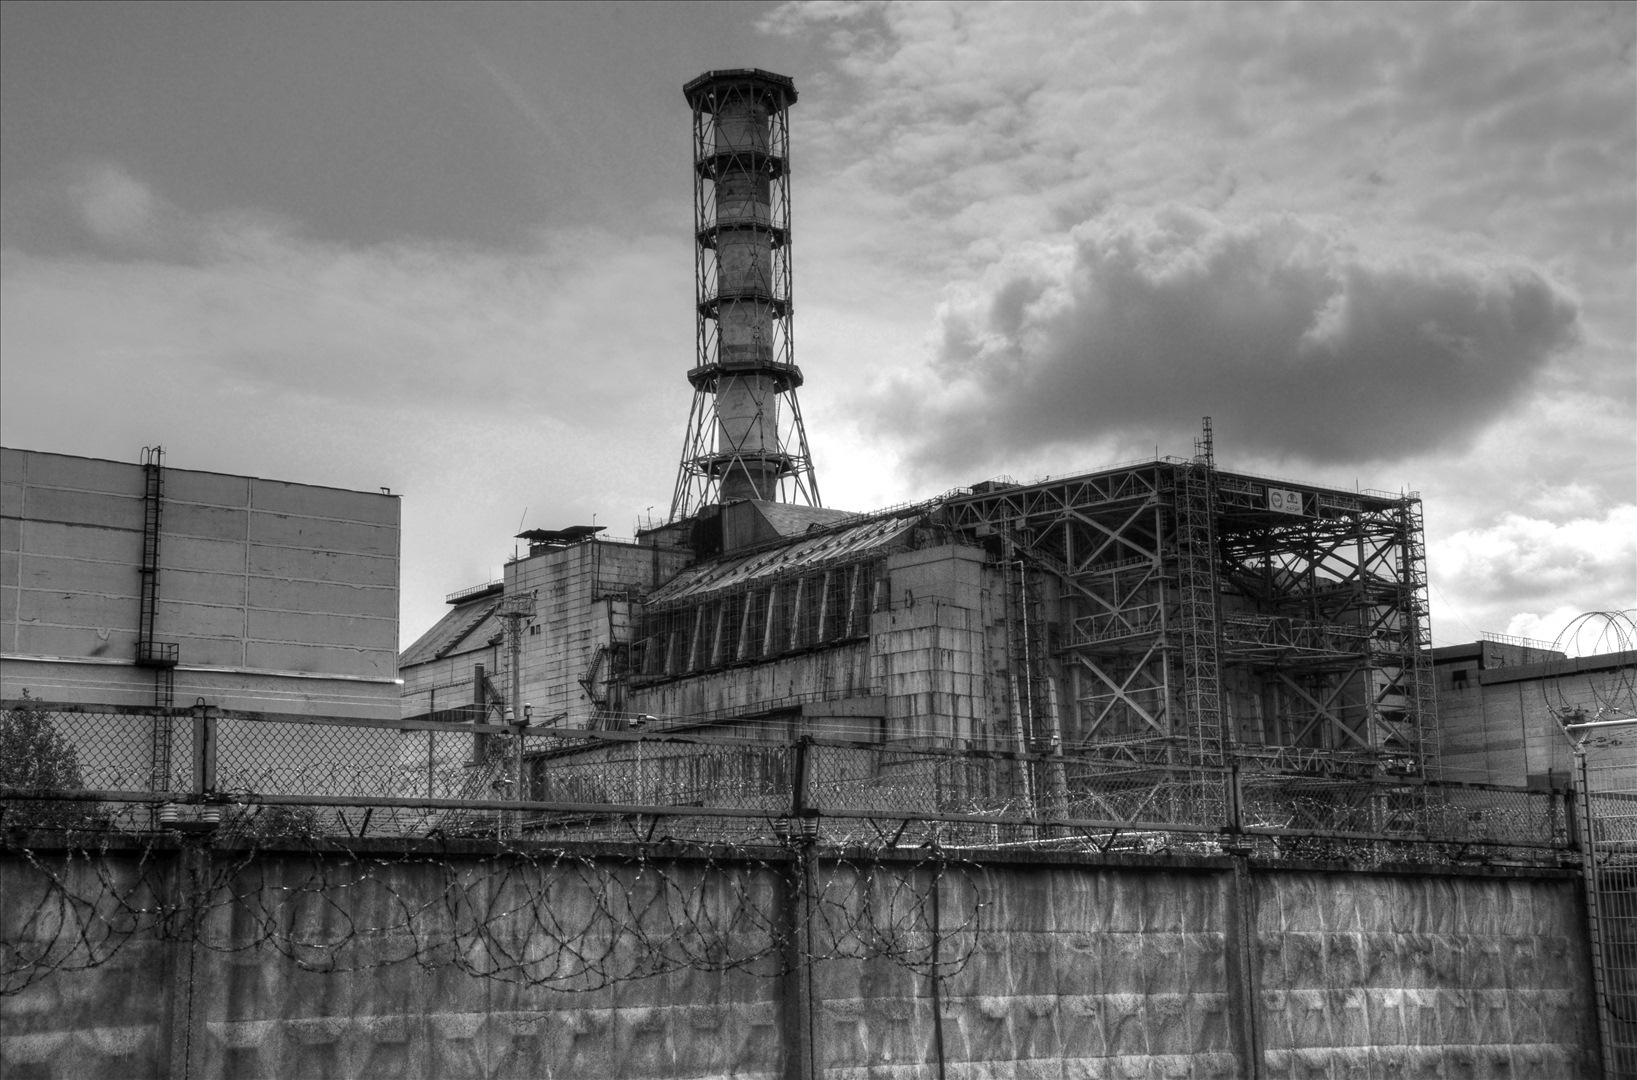 Chernobyl. Photo by Kamil Porembiński: http://www.fotopedia.com/items/flickr-3724330480